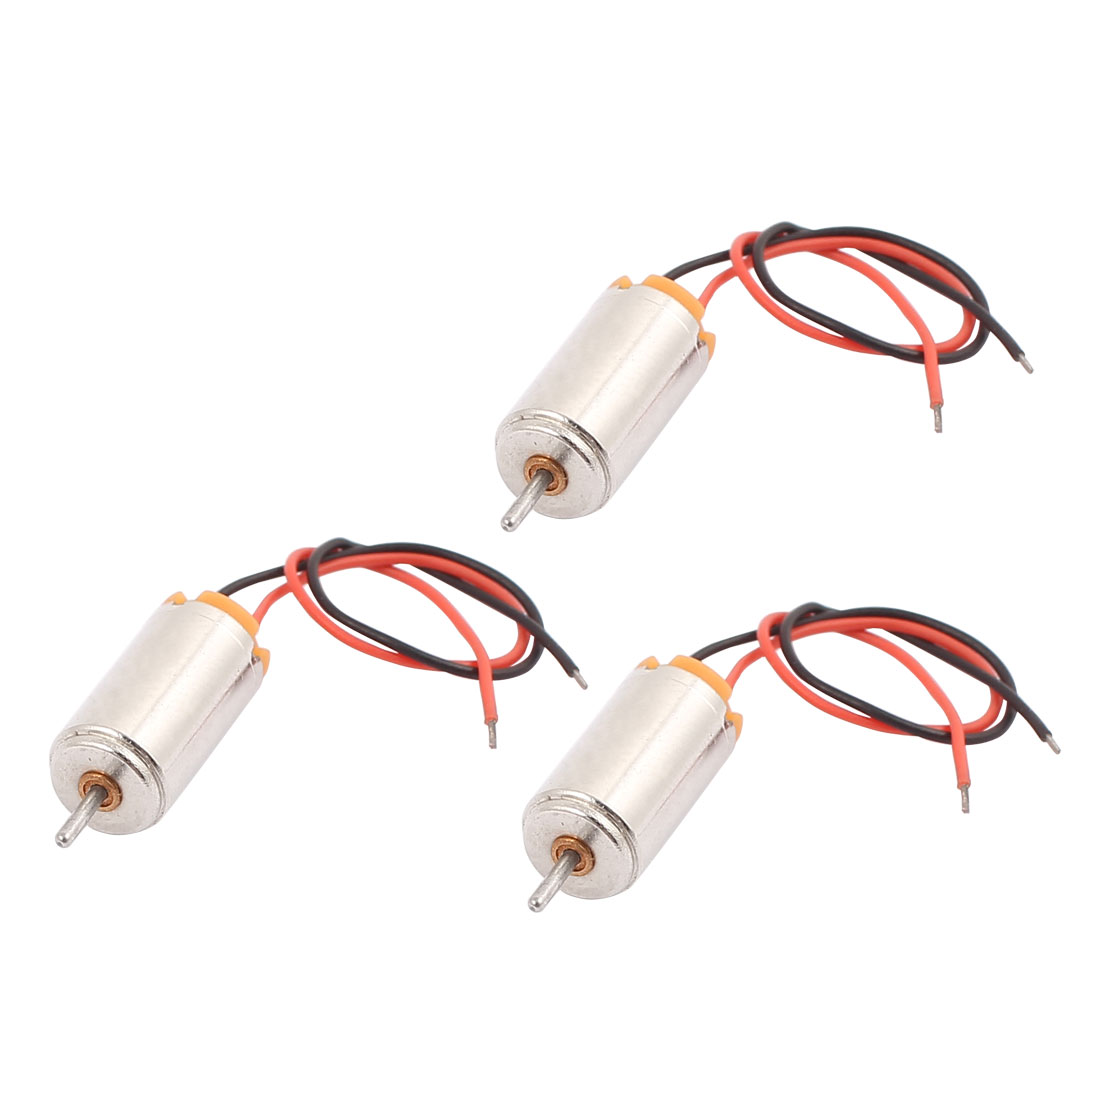 3Pcs DC1.5-4.5V 44273RPM Large Torque Micro Coreless DC Motor for Airplane Model